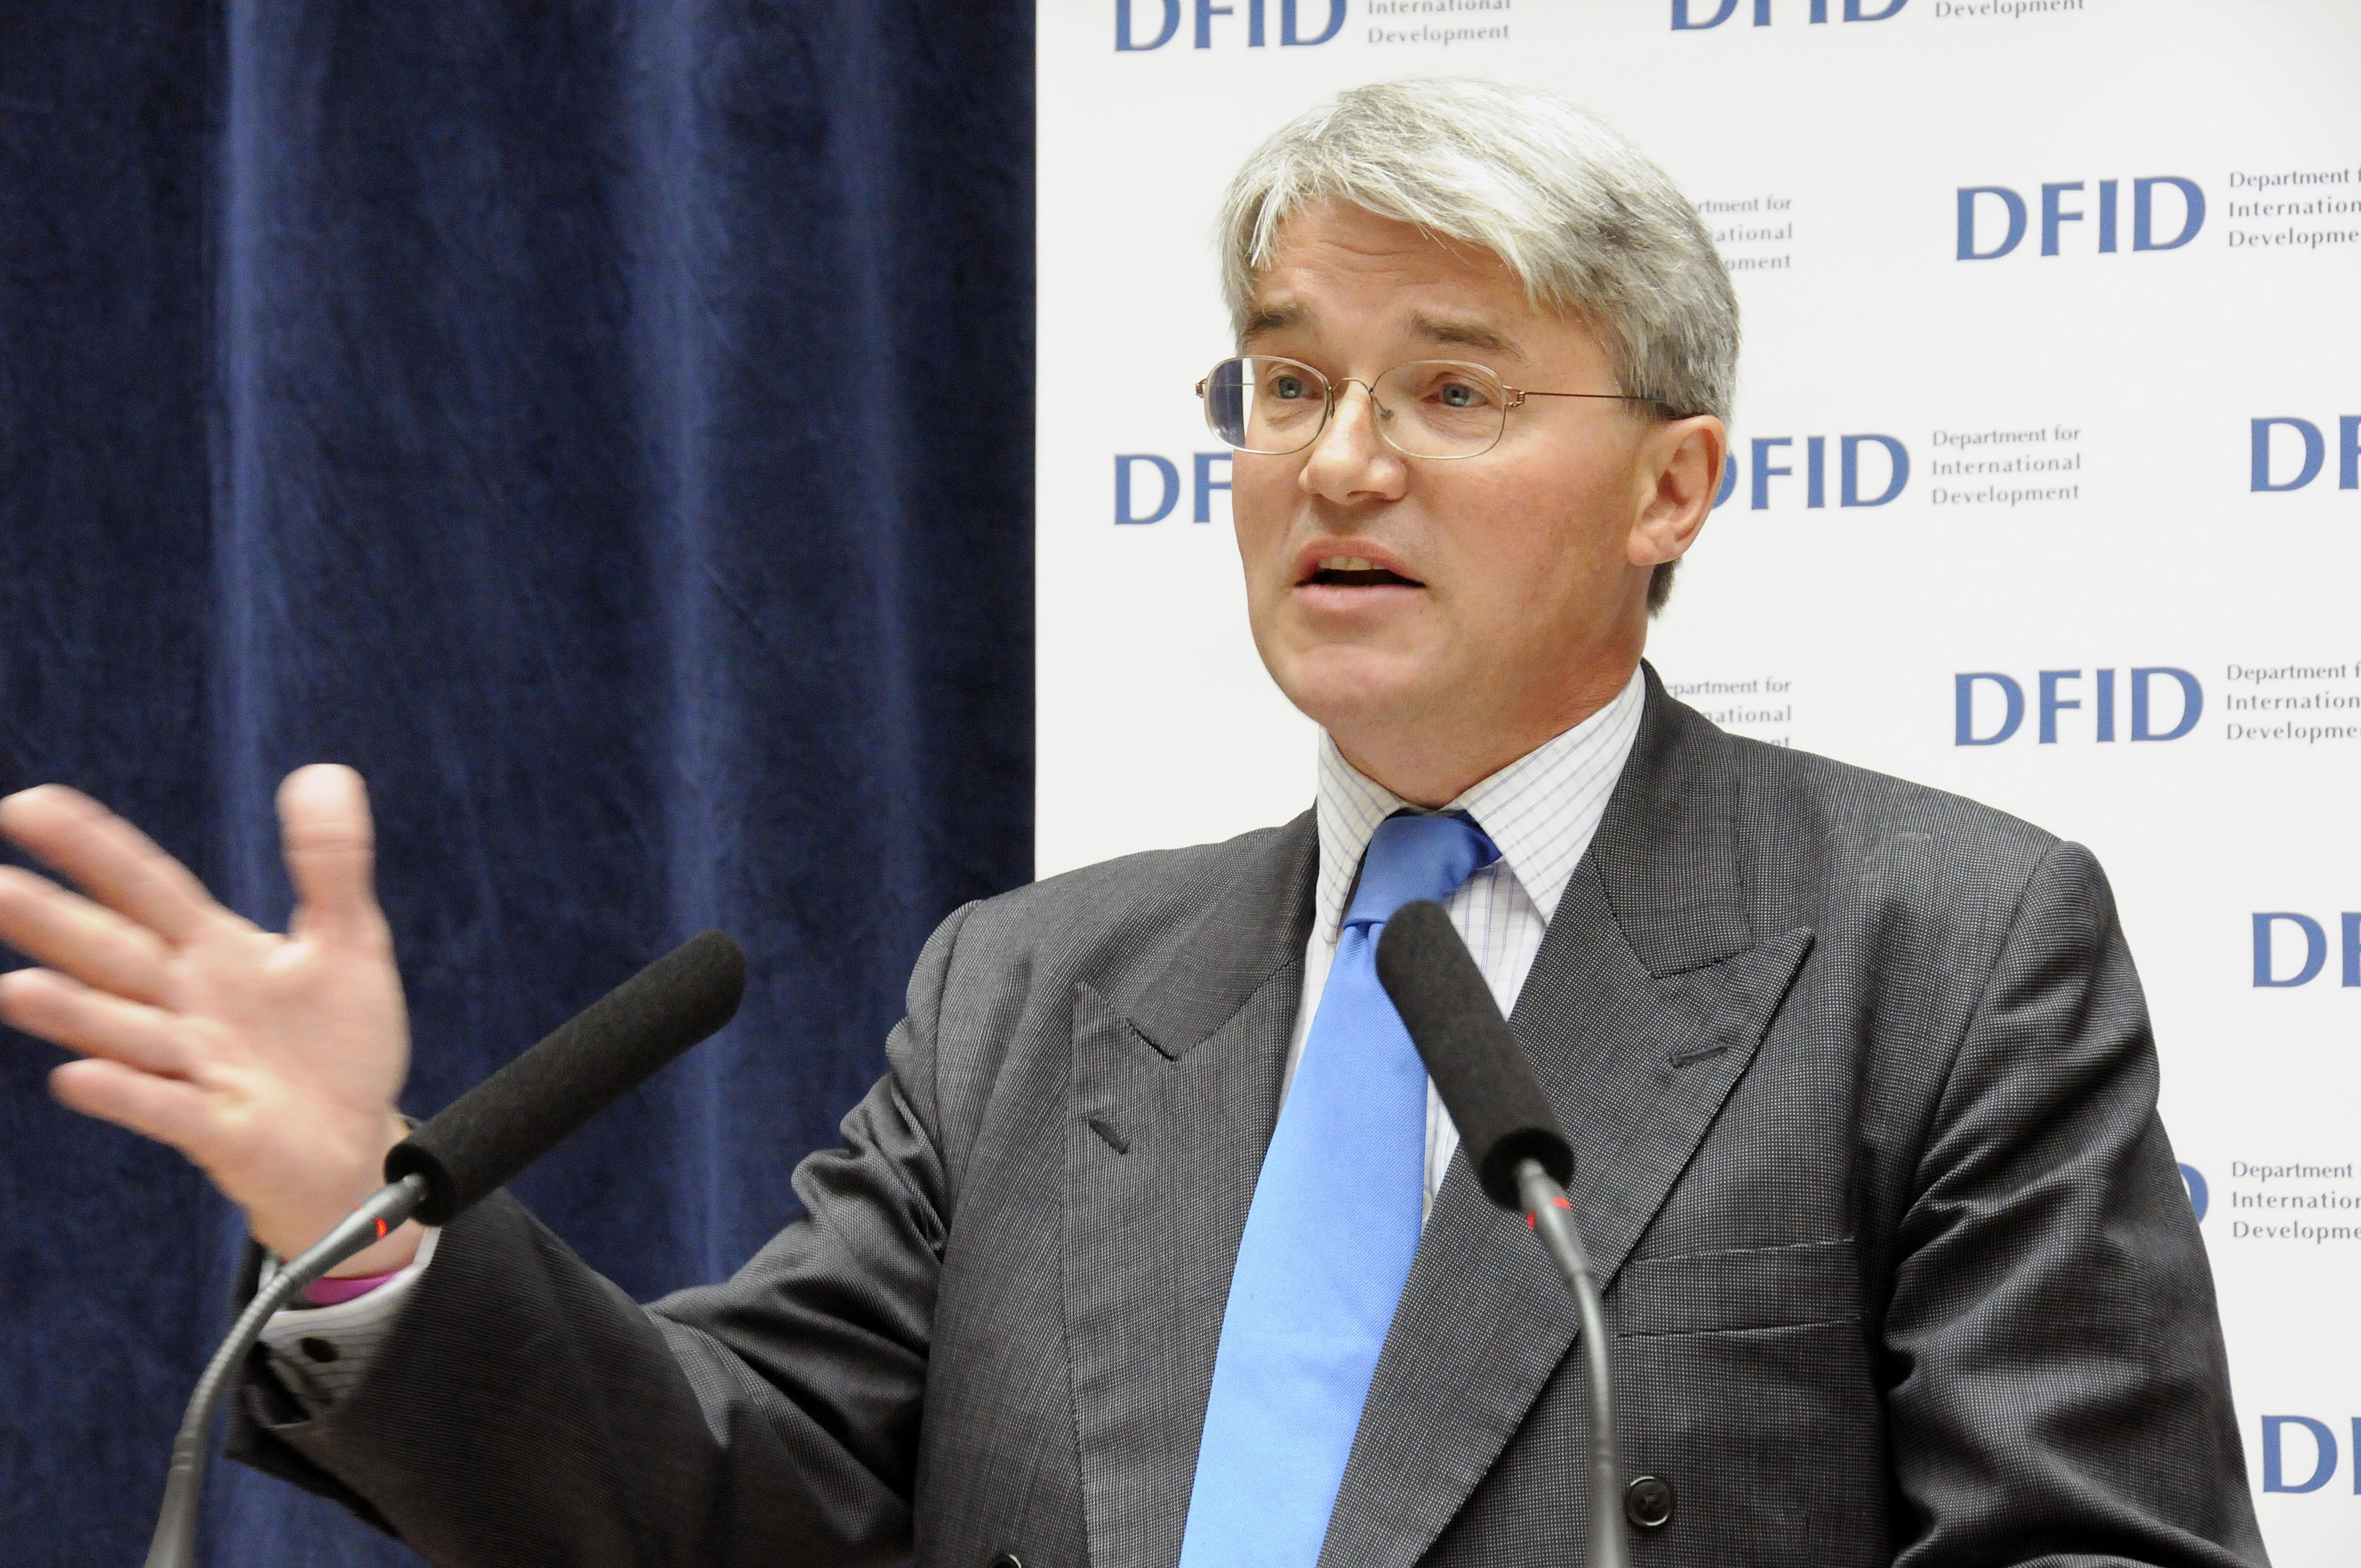 Andrew Mitchell, Secretary of State for International Development